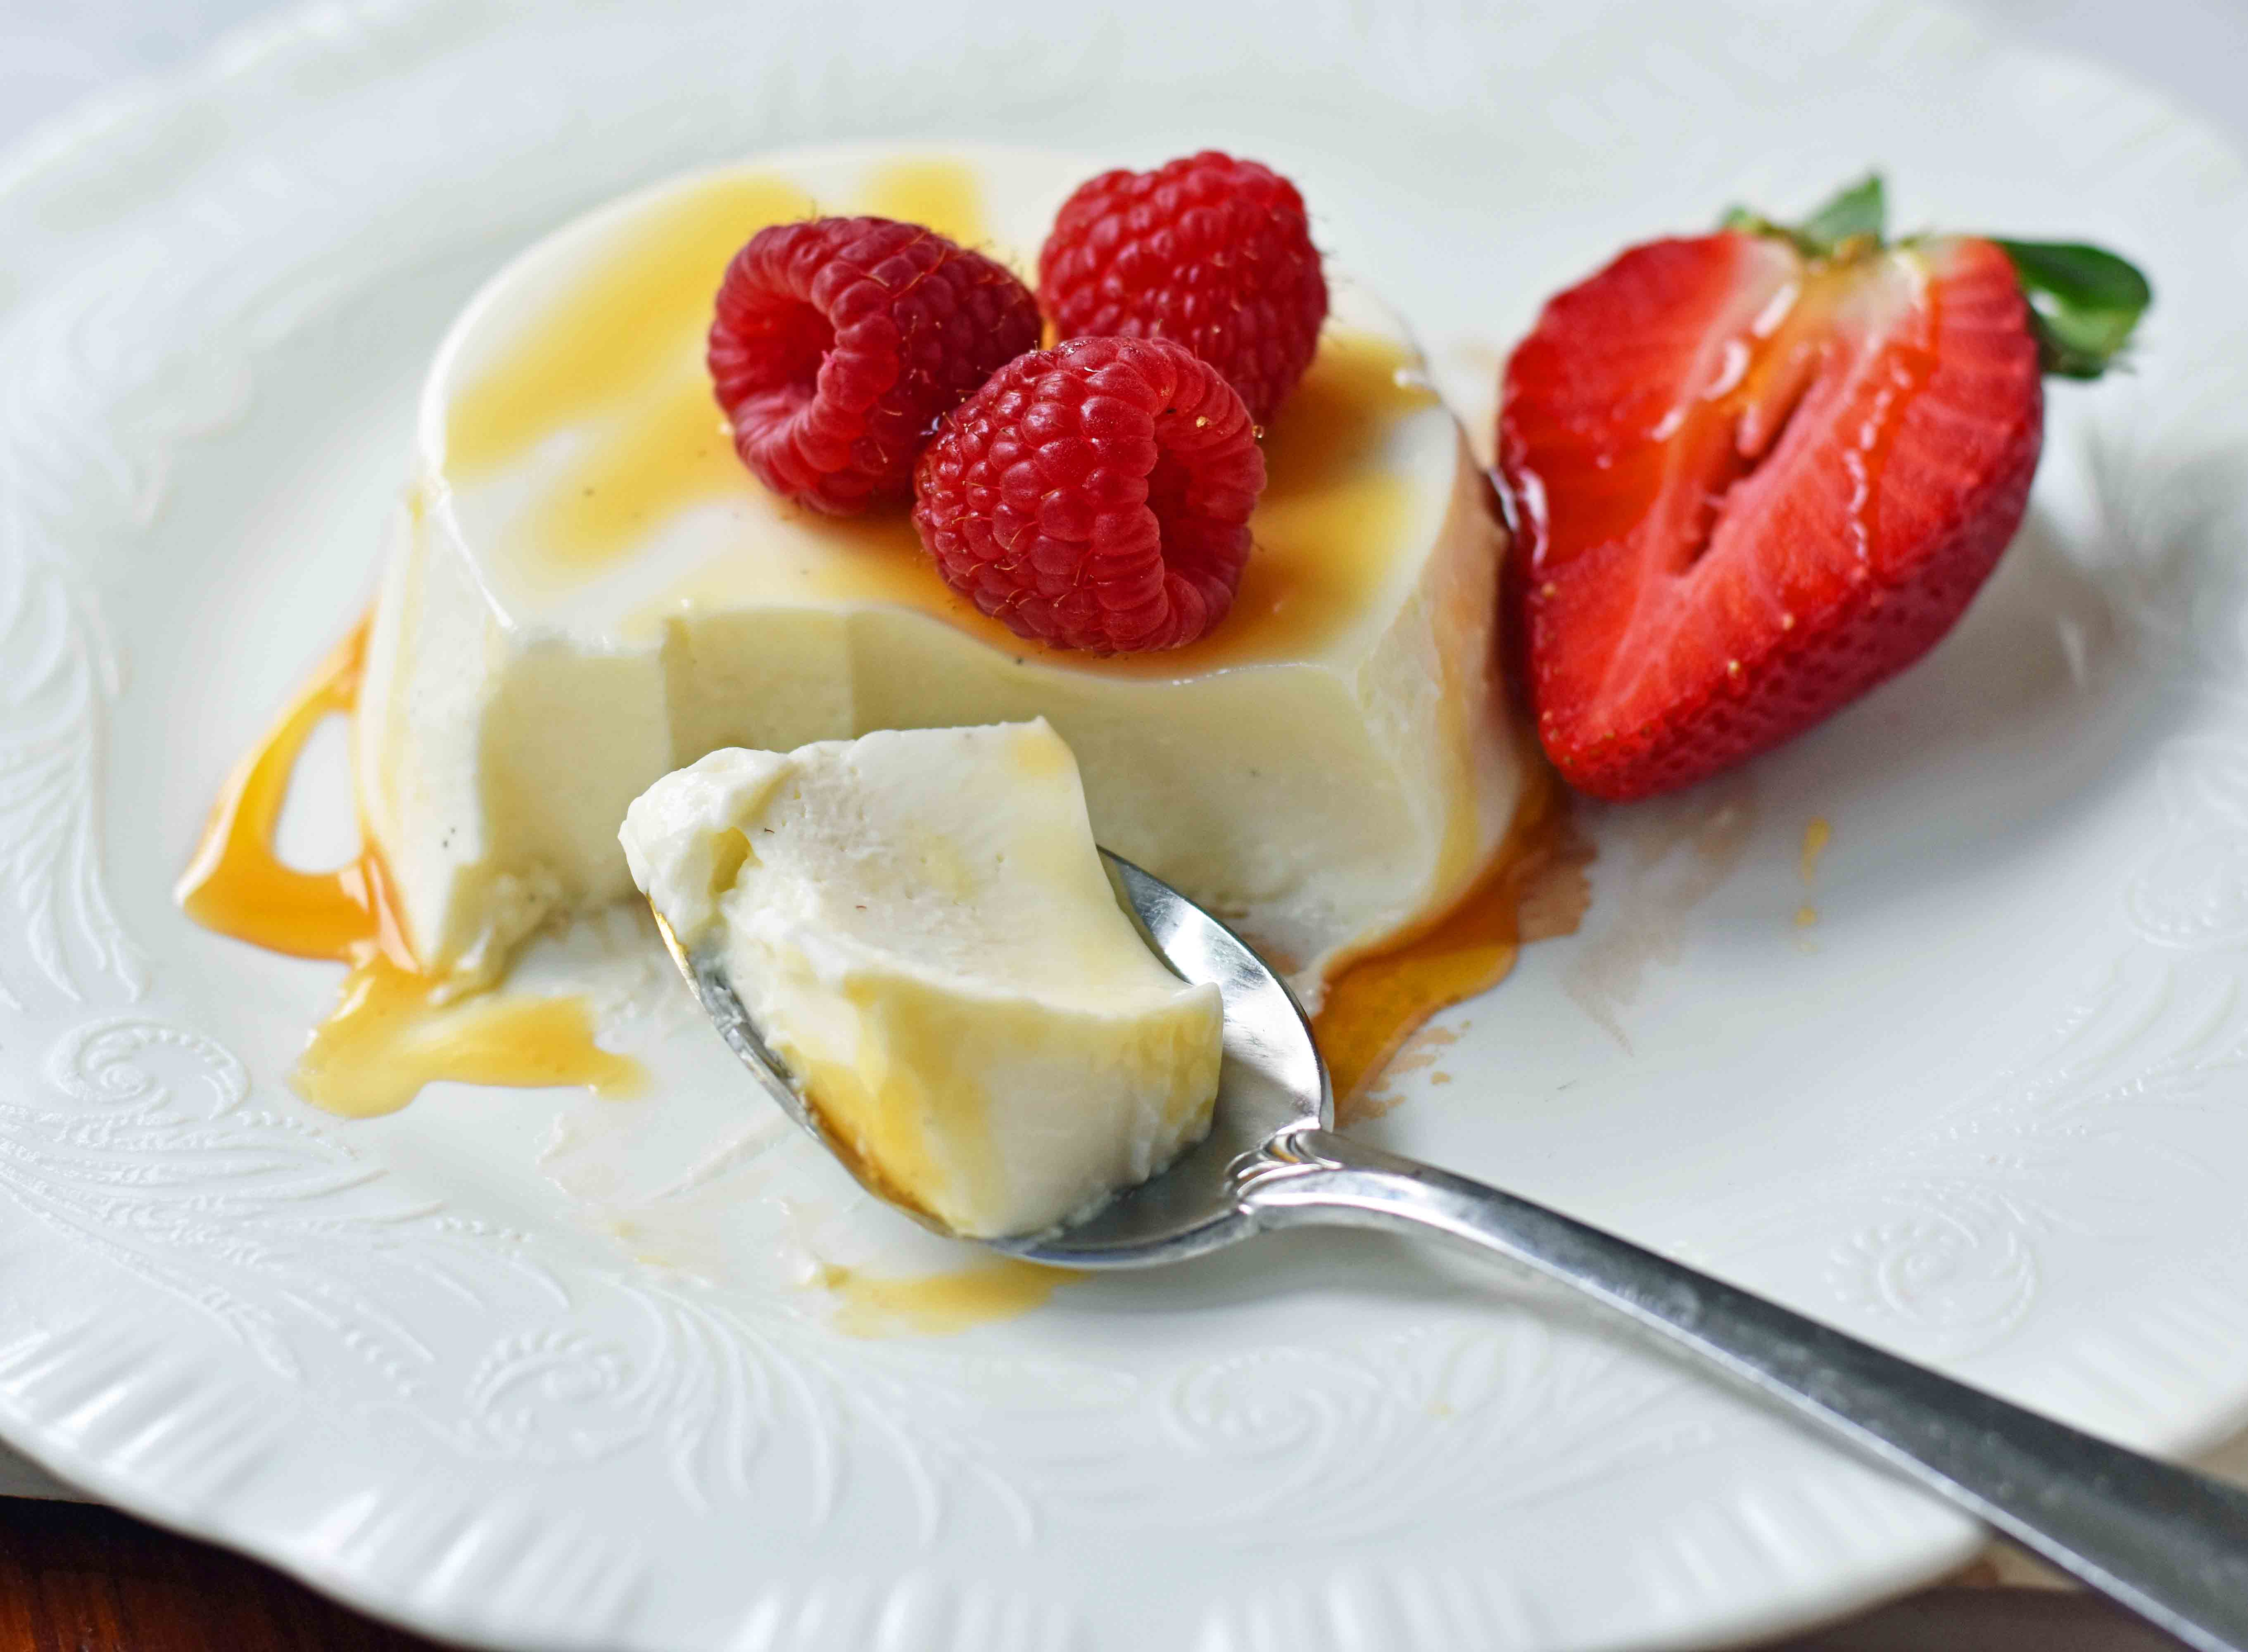 Greek Yogurt Panna Cotta. An easy panna cotta recipe made with greek yogurt, cream, sugar, honey, gelatin and vanilla bean. A silky smooth, creamy dessert that can be topped with fresh fruits, honey, caramel, berry compote or sauce, or anything you can dream up. The perfect panna cotta recipe. www.modernhoney.com